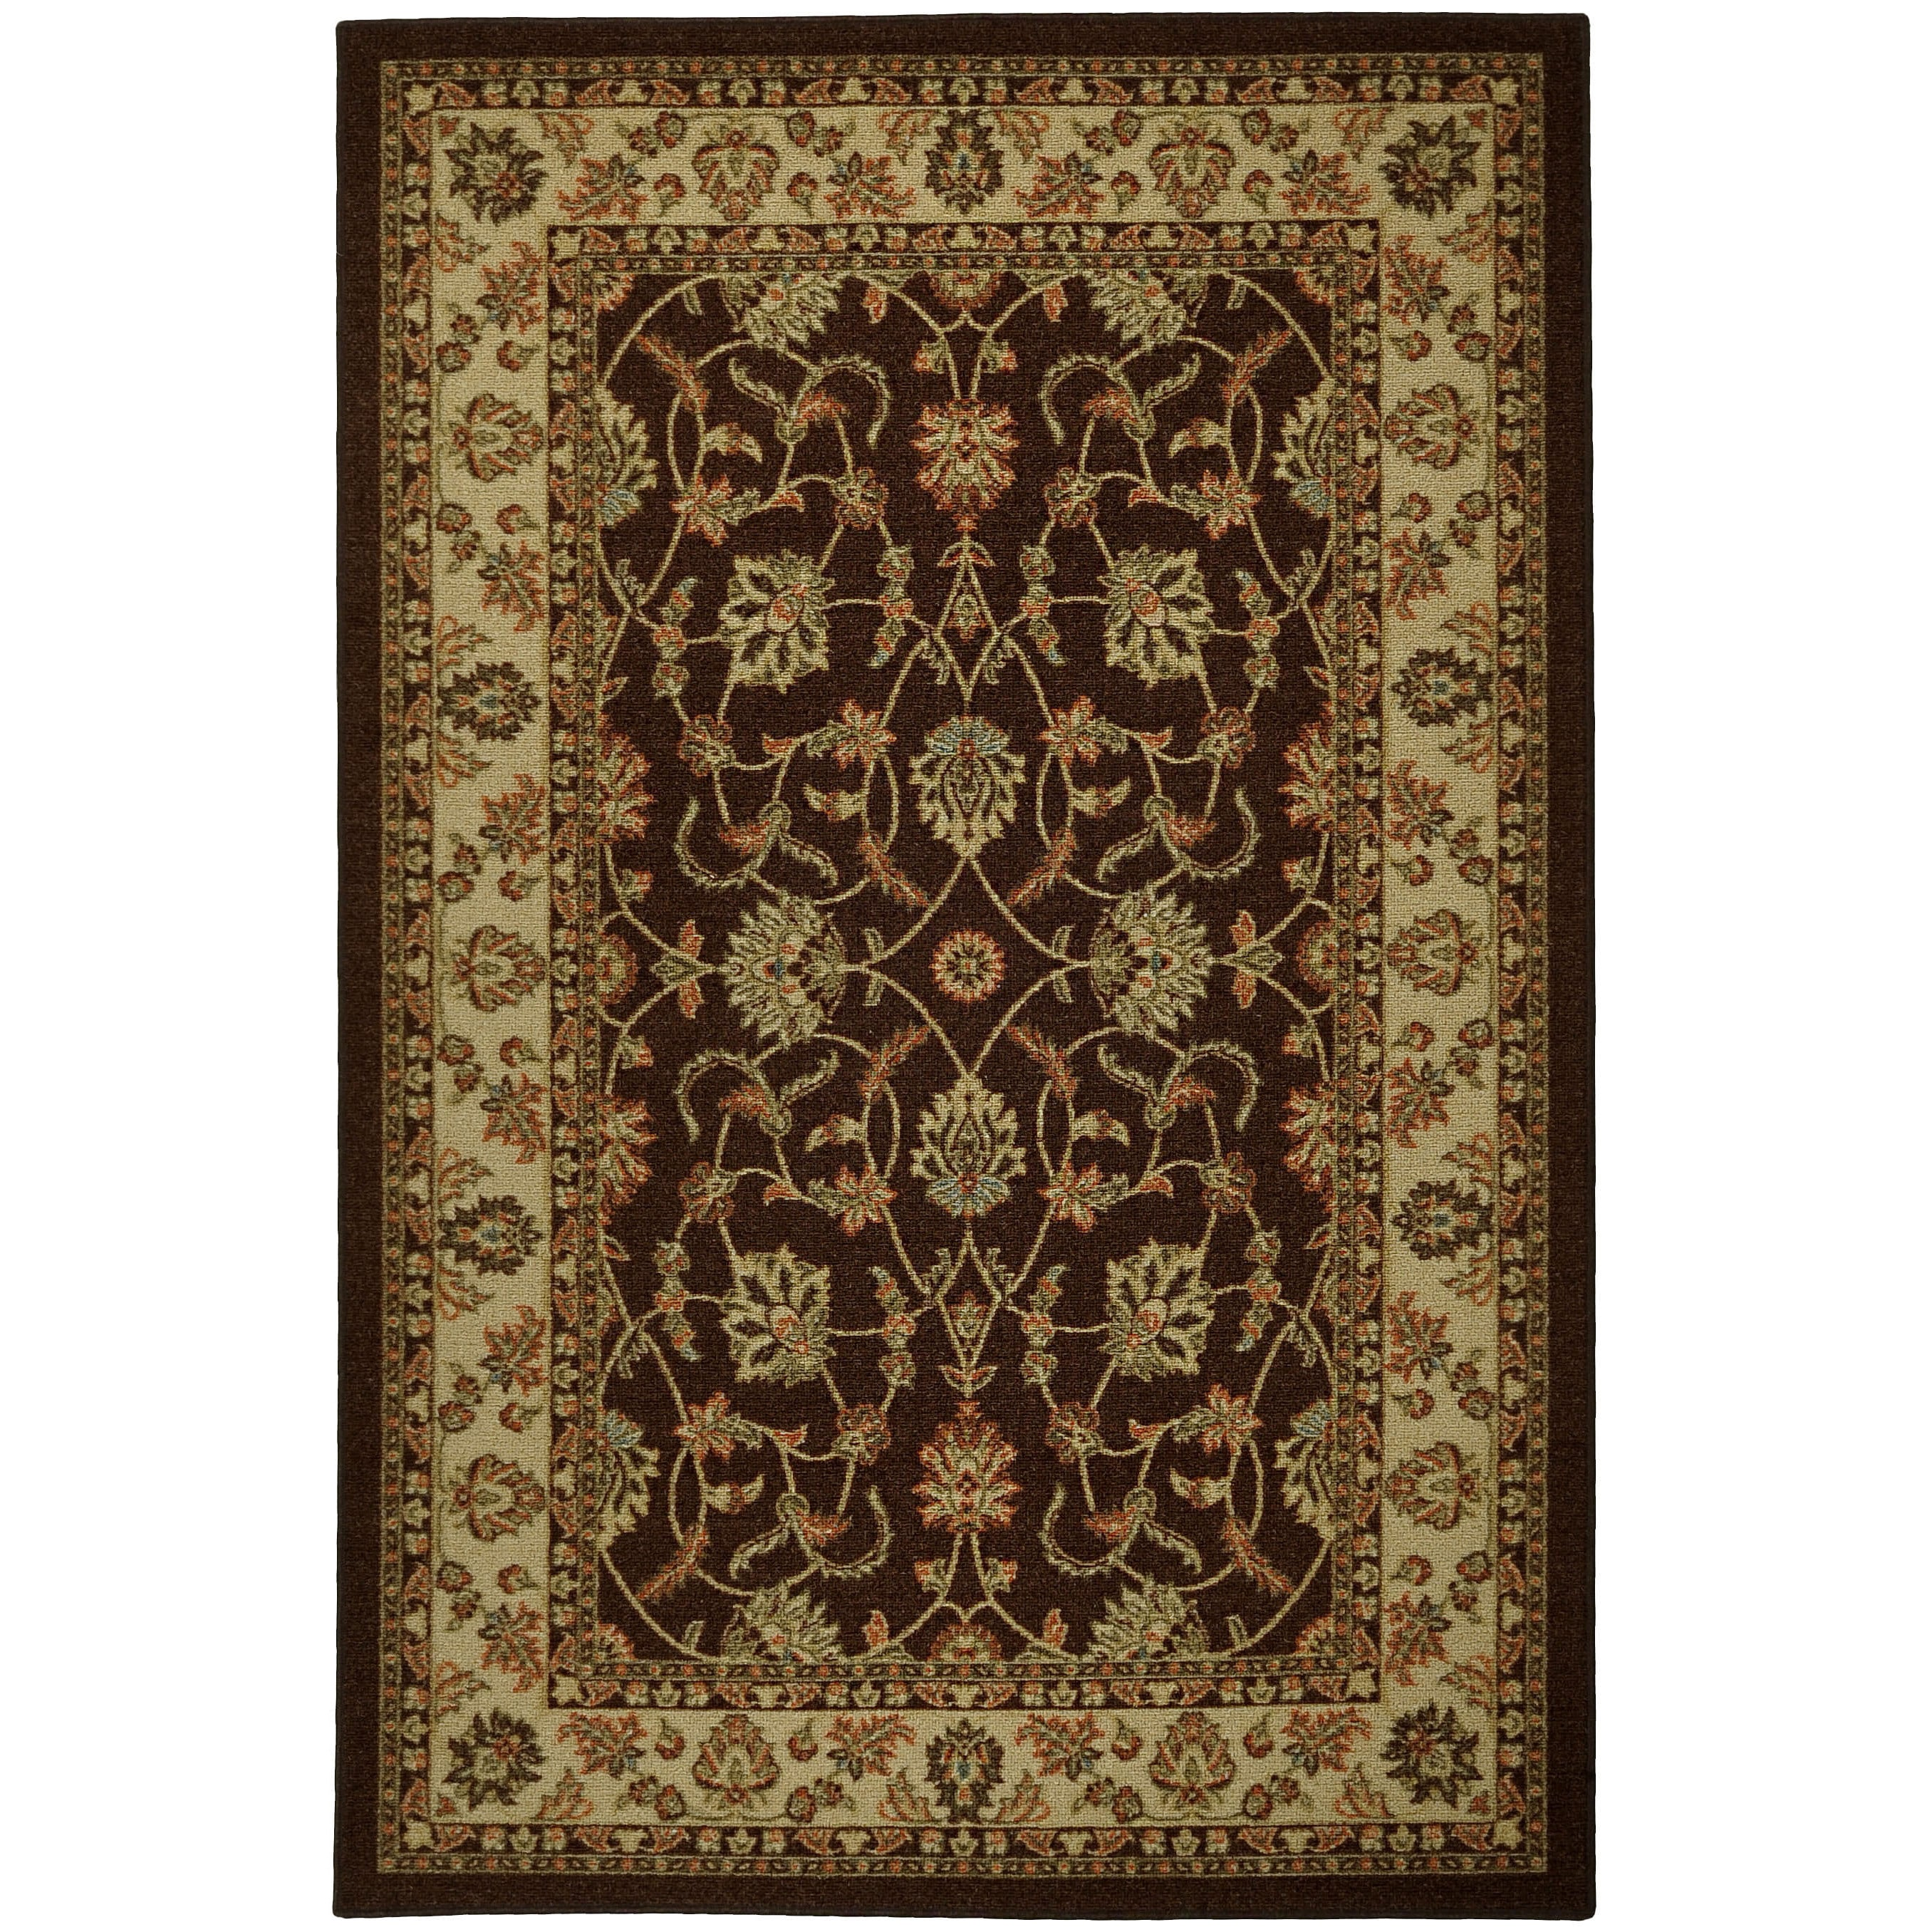 Rubber Back Brown Traditional Floral Non-Skid Area Rug (5' x 6'6) at Sears.com